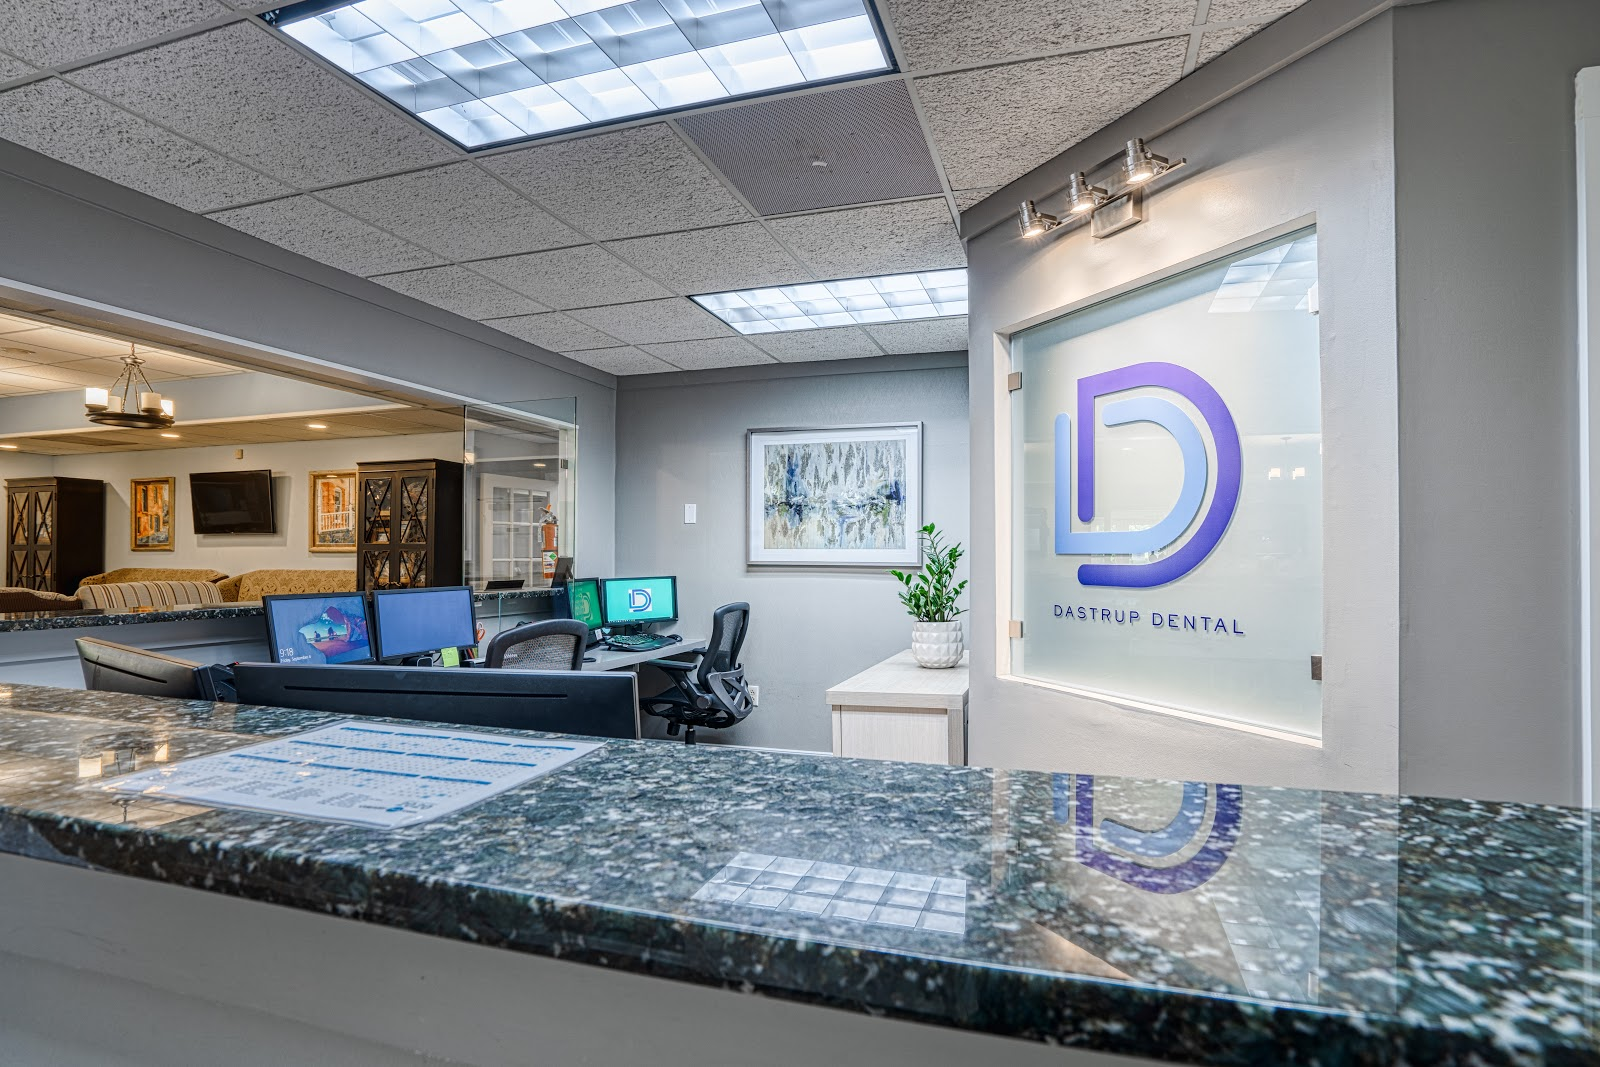 Dastrup Dental, the foremost Family dentistry in Davidson, NC